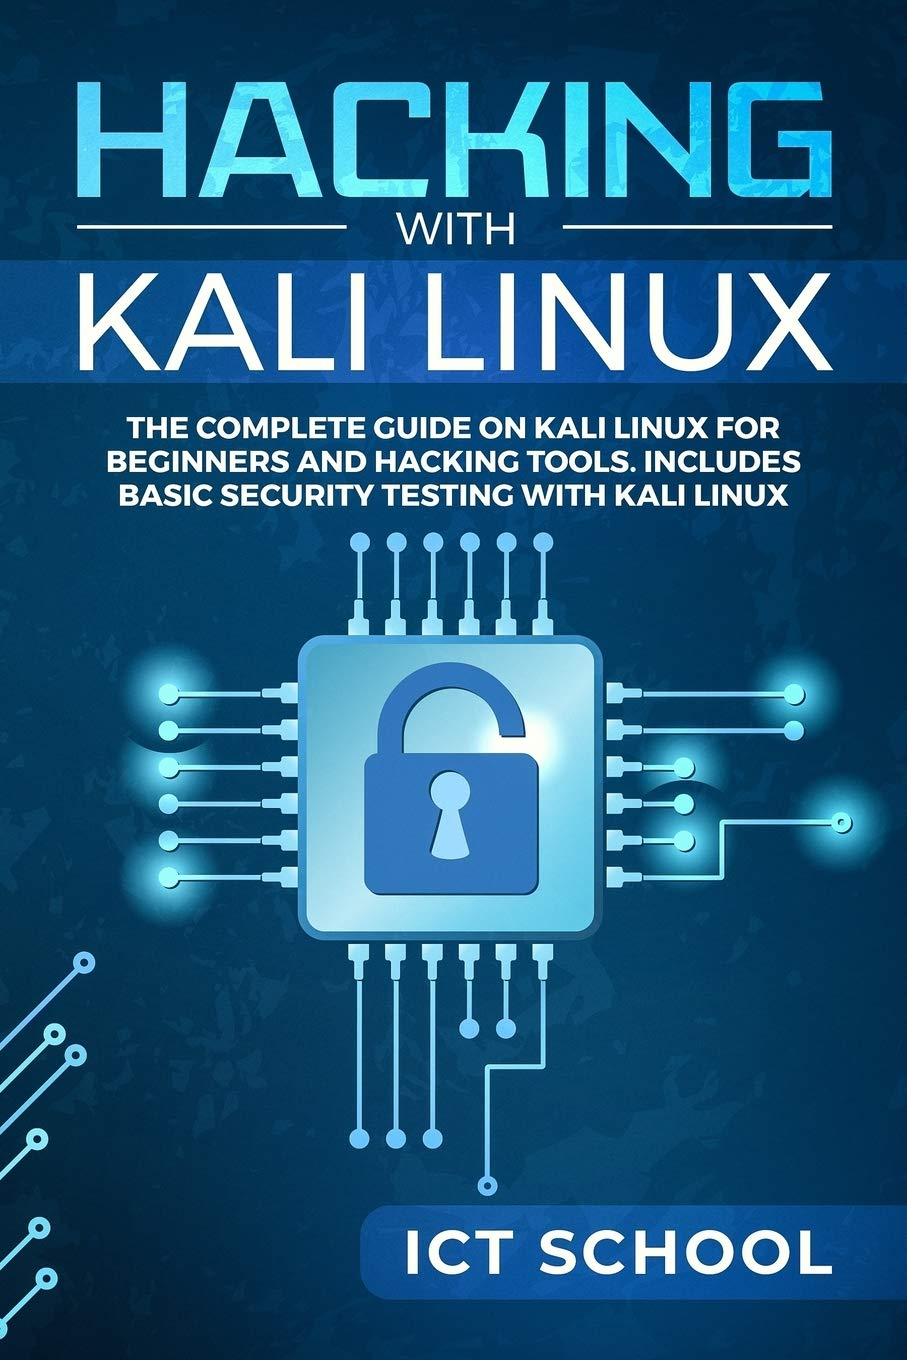 Hacking With Kali Linux  The Complete Guide On Kali Linux For Beginners And Hacking Tools. Includes Basic Security Testing With Kali Linux